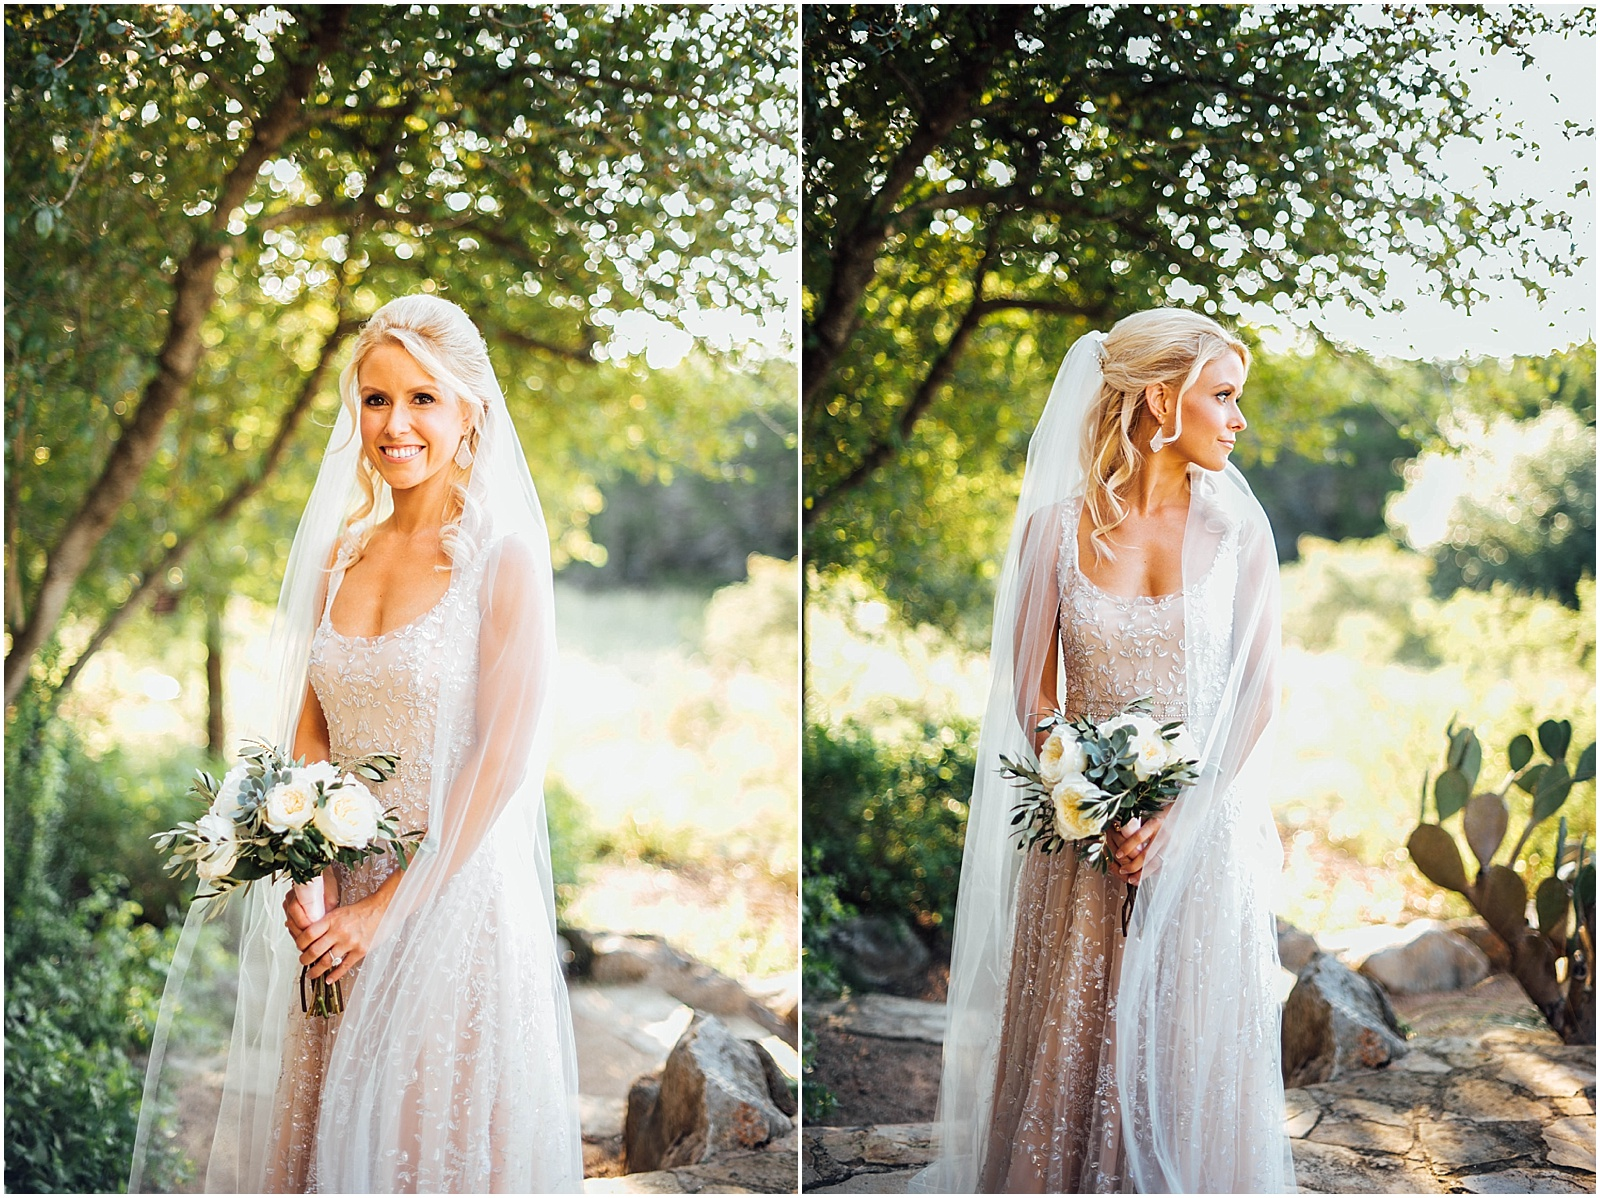 Bridal Portraits Blush Pink Bridal Details at Lady Bird Johnson Wildflower Center Austin Texas Wedding